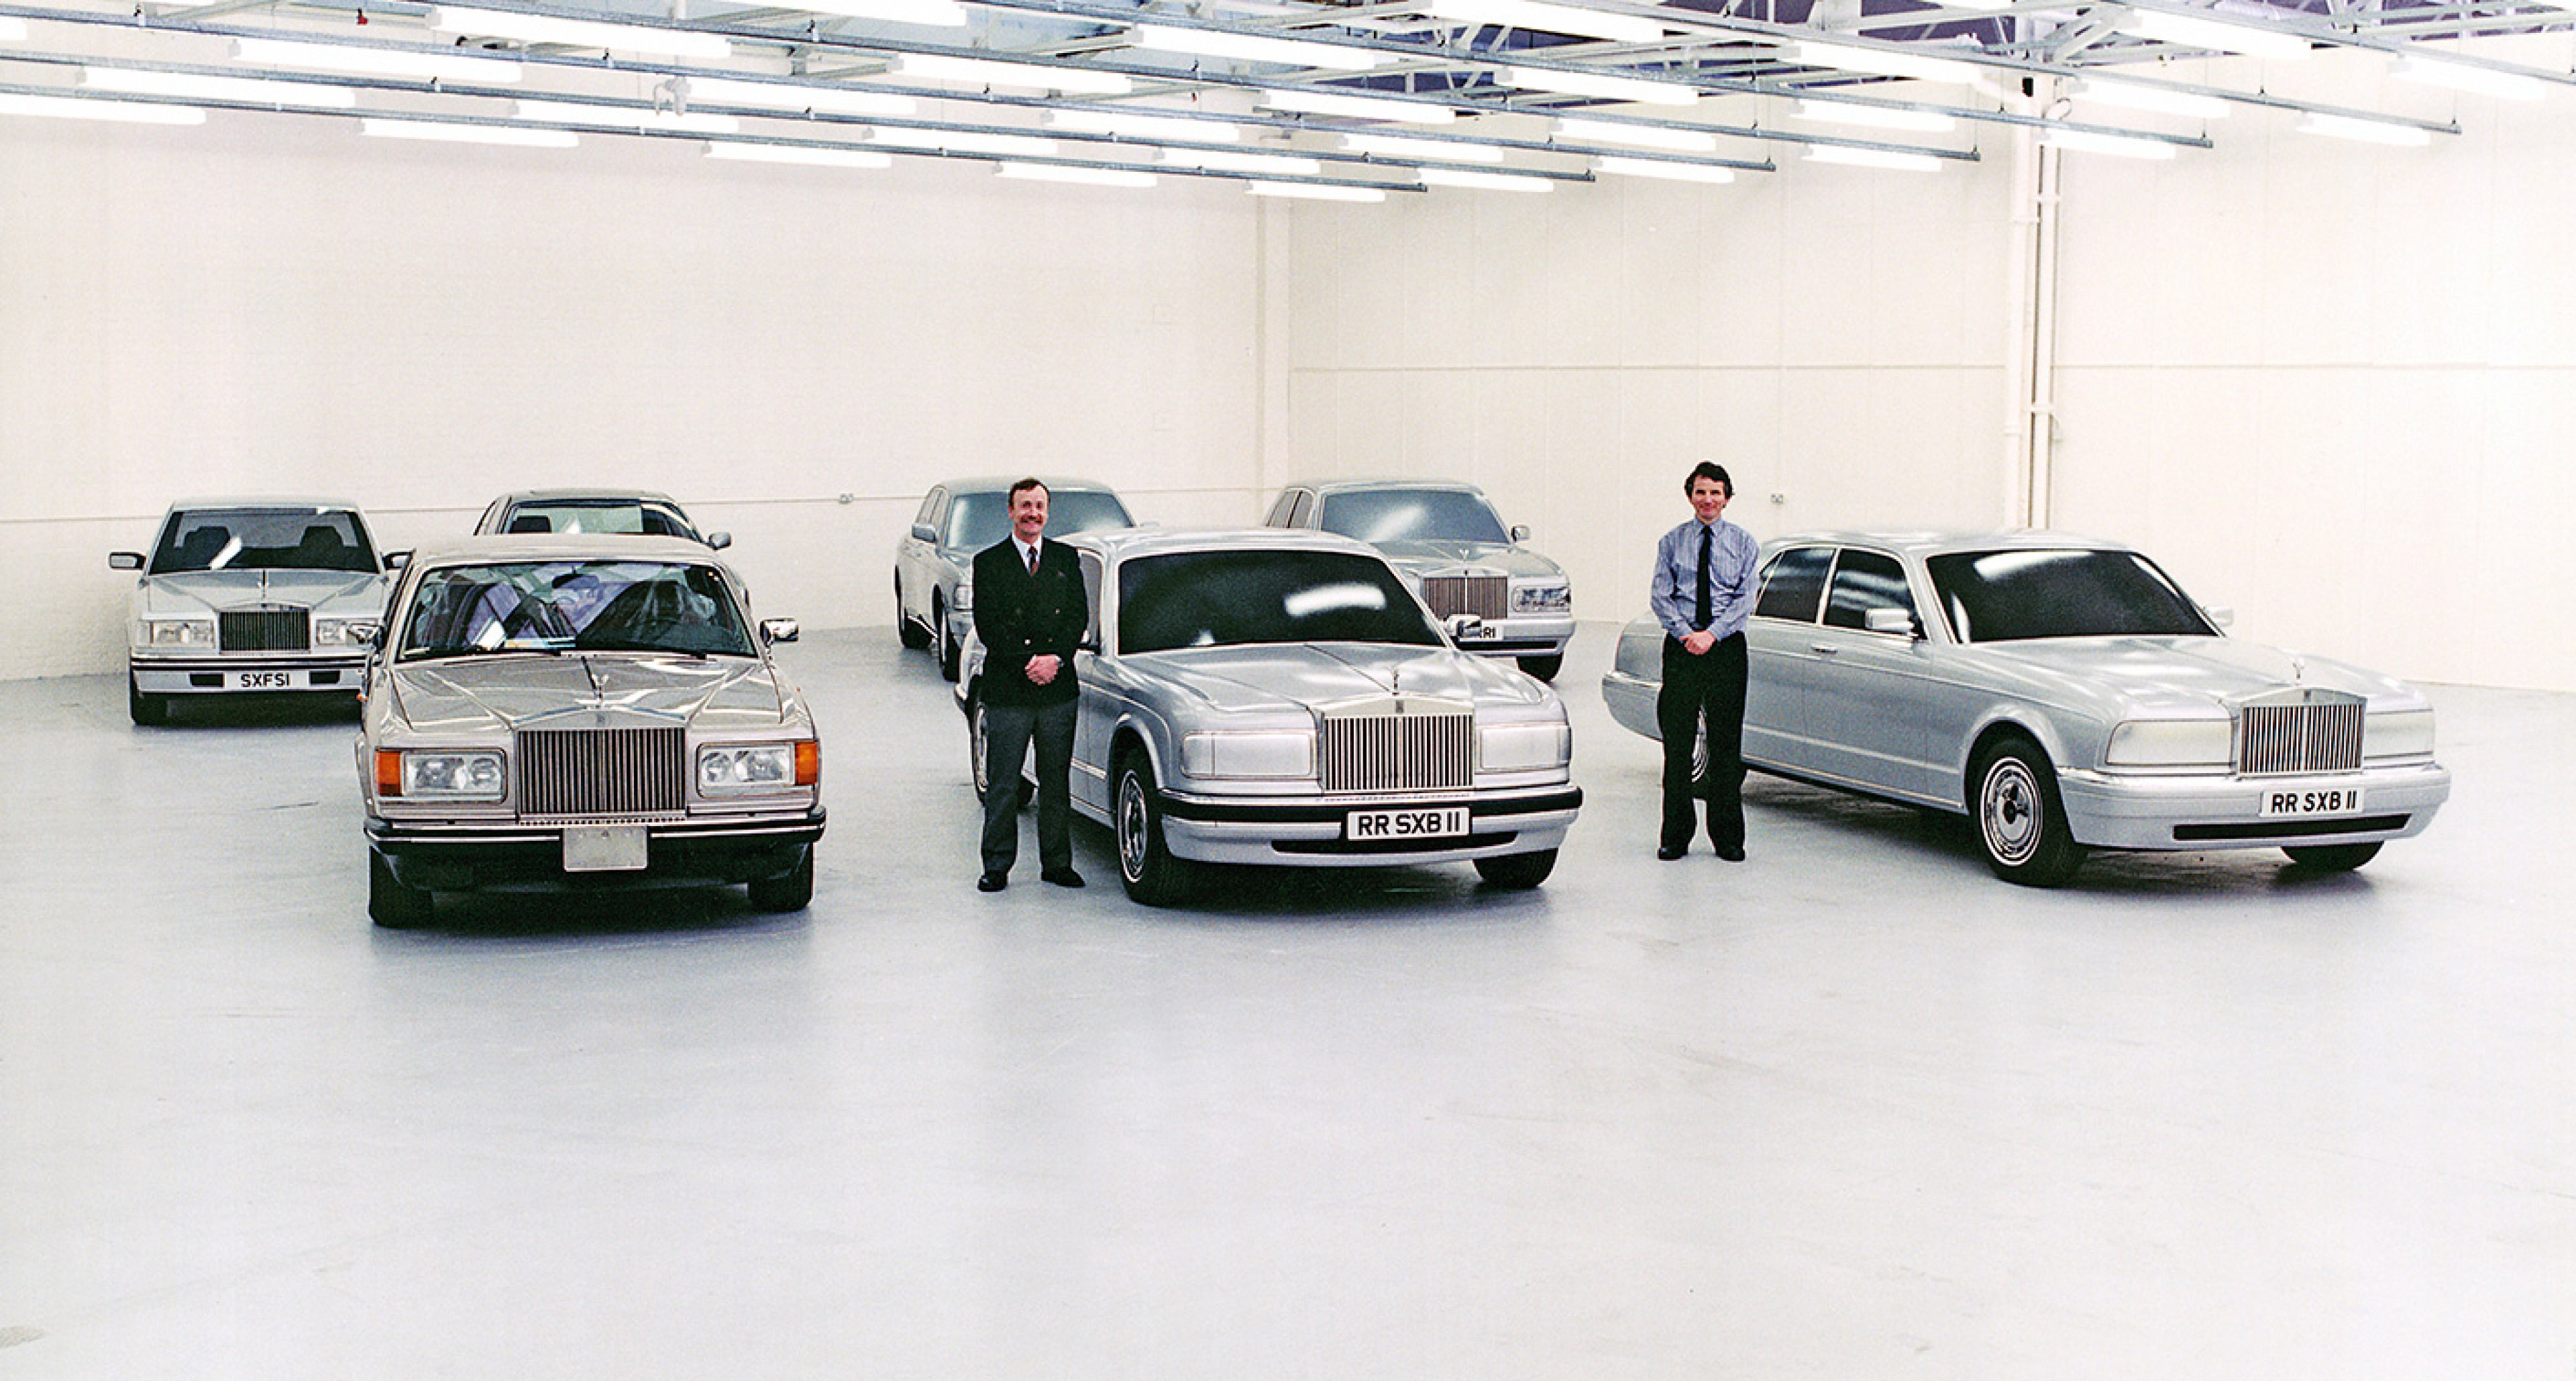 June 1991: Crewe's Styling Viewing Area shows proposals of how to diversify the marques brand images while using the same bodyshell